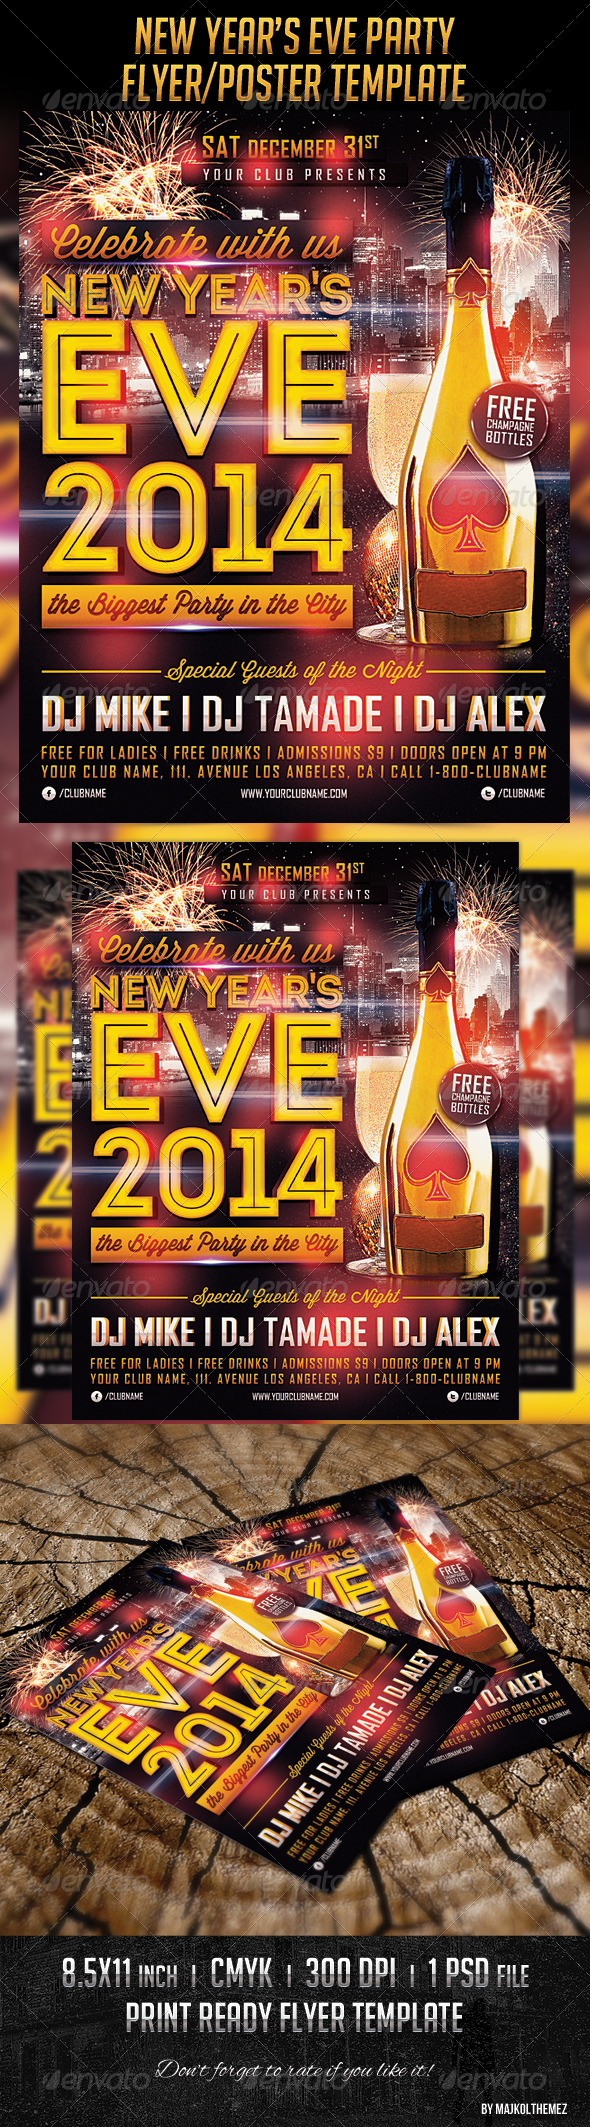 New Year's Eve Poster Template - Clubs & Parties Events